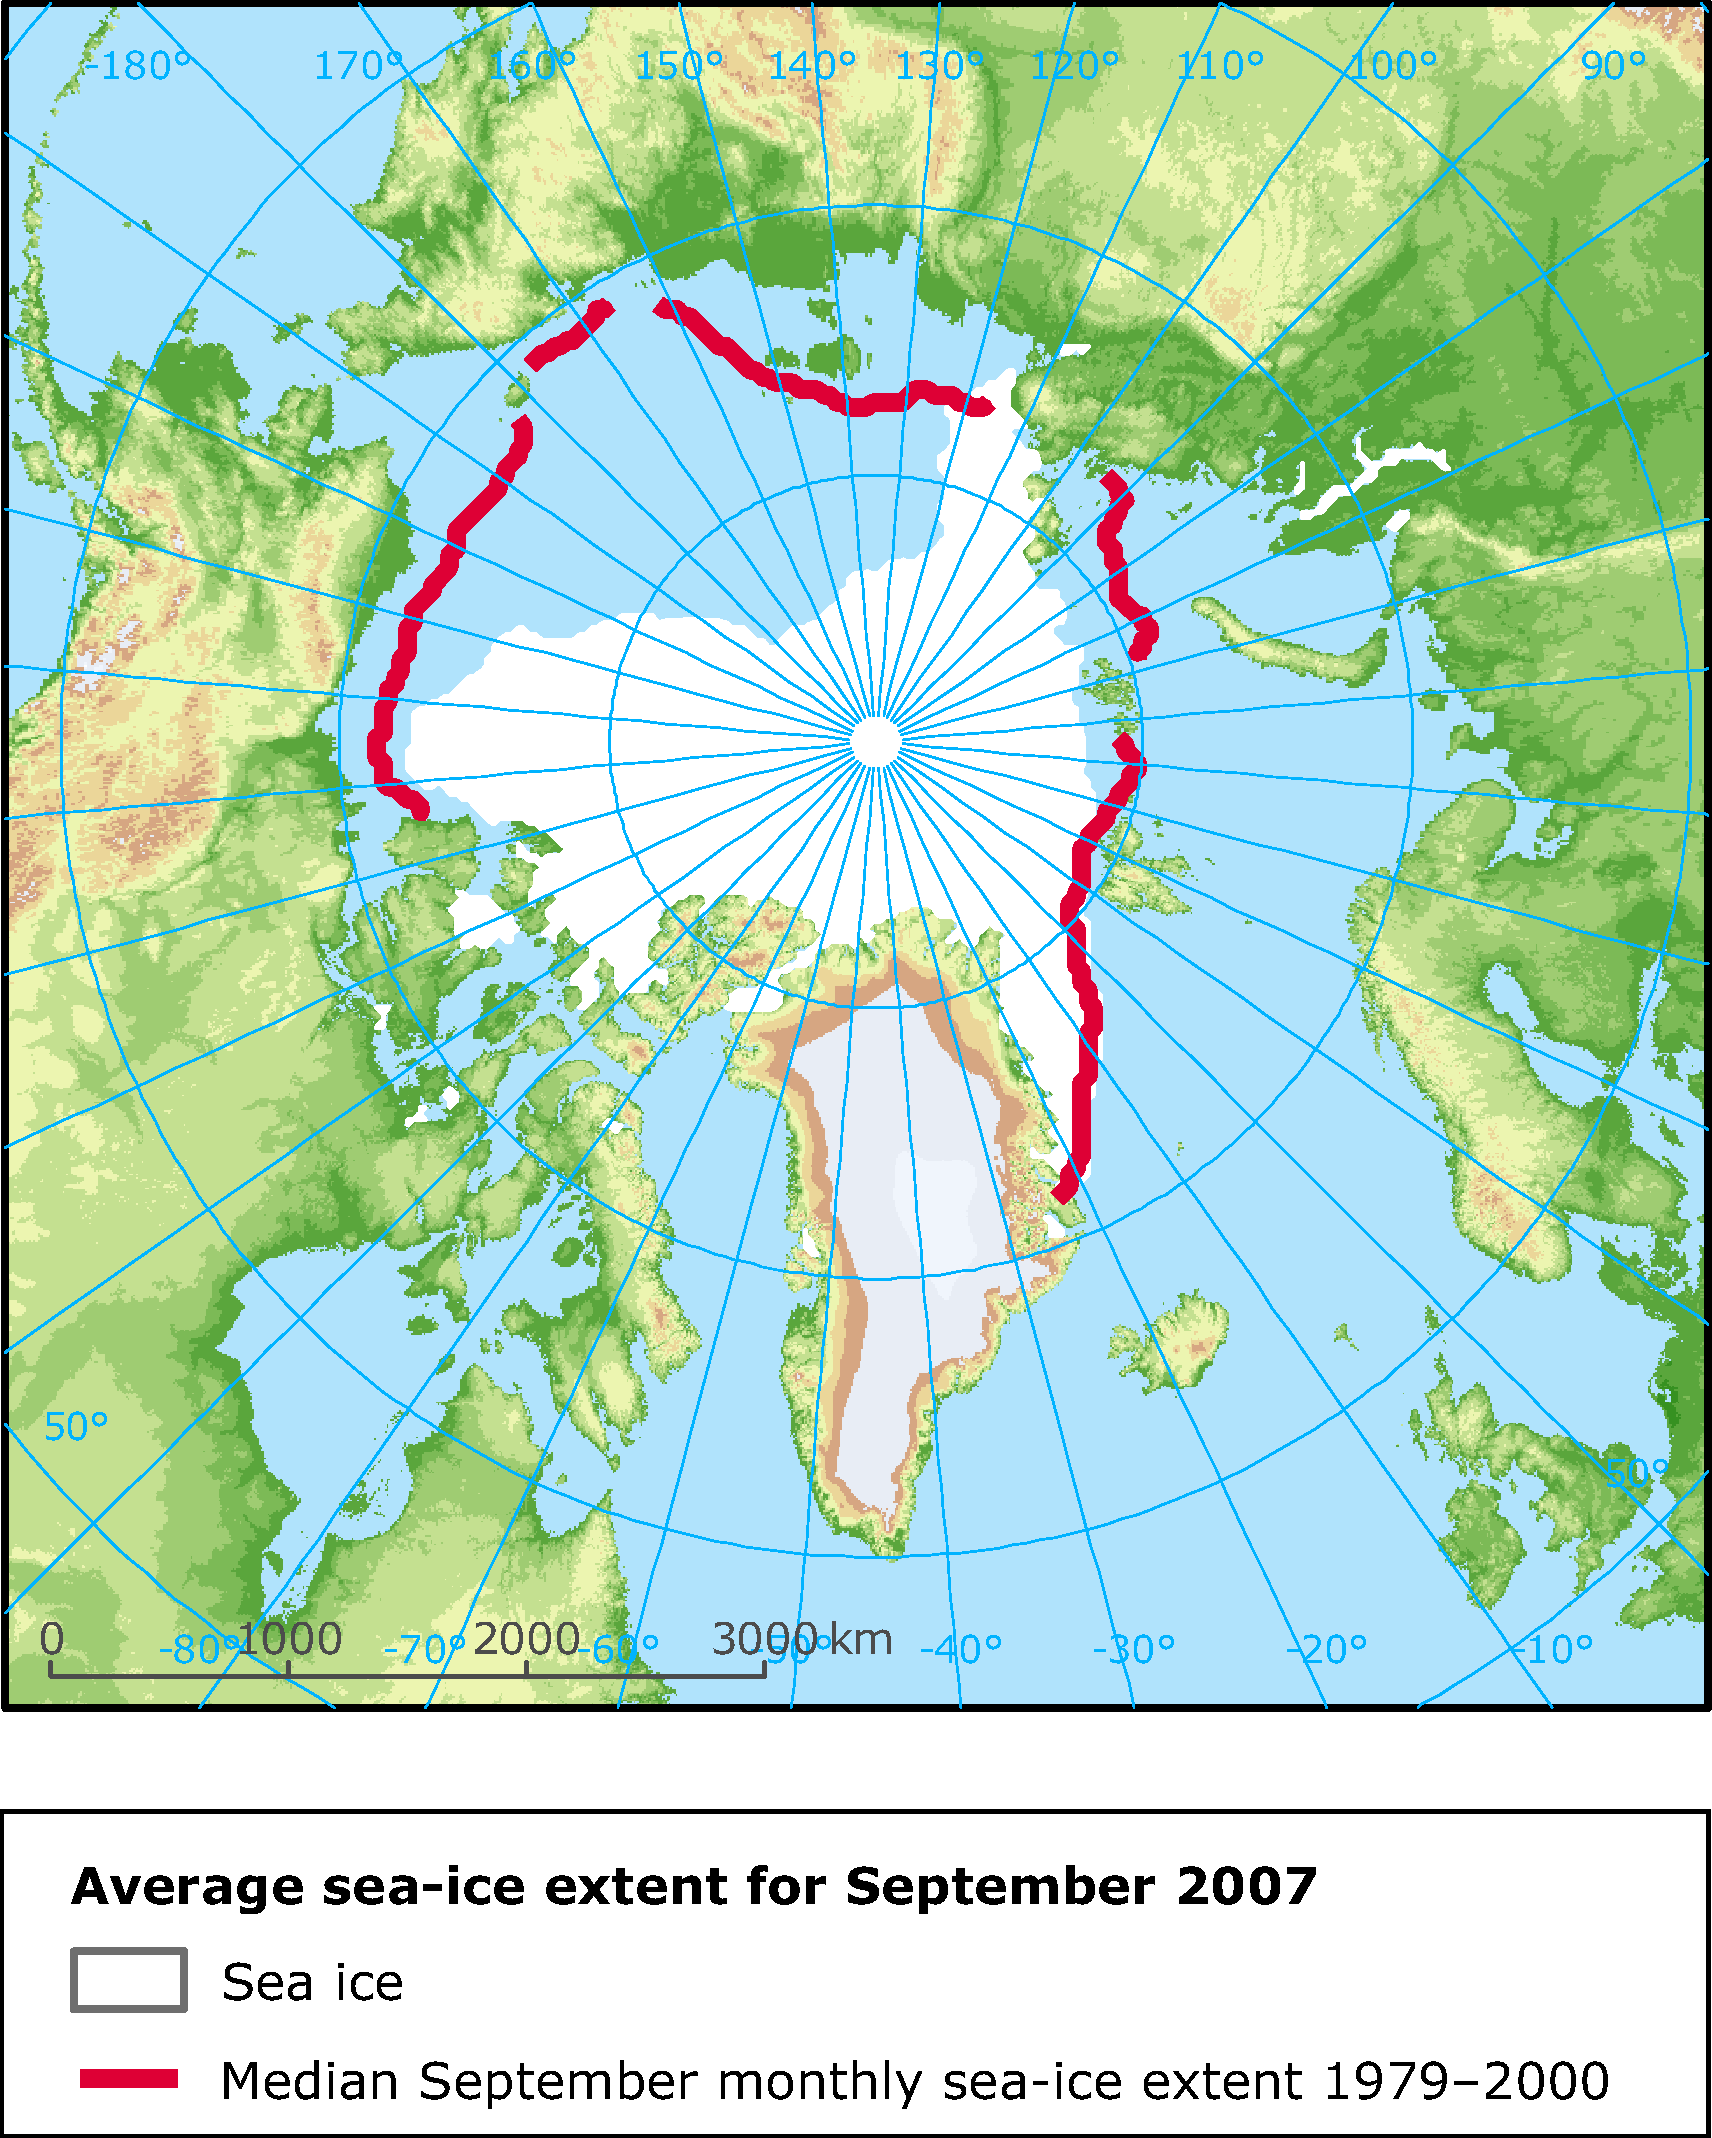 The 2007 minimum sea-ice extent